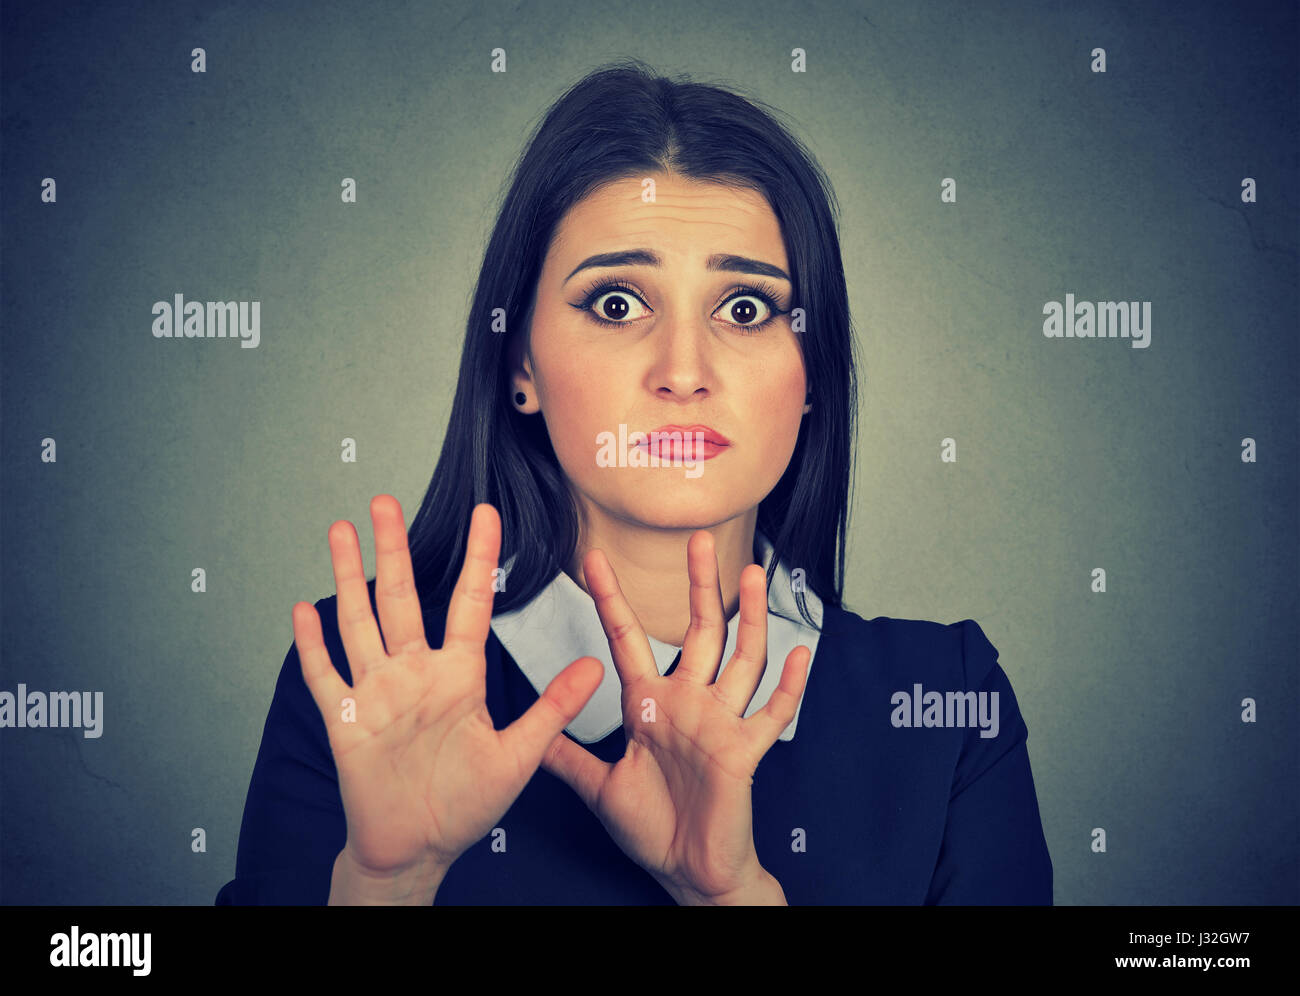 Grimace face clip art stock photo woman pulls a face in upset - Scared Woman Raising Hands Up Afraid To Be Attacked Avoiding Unpleasant Situation Isolated On Gray Background